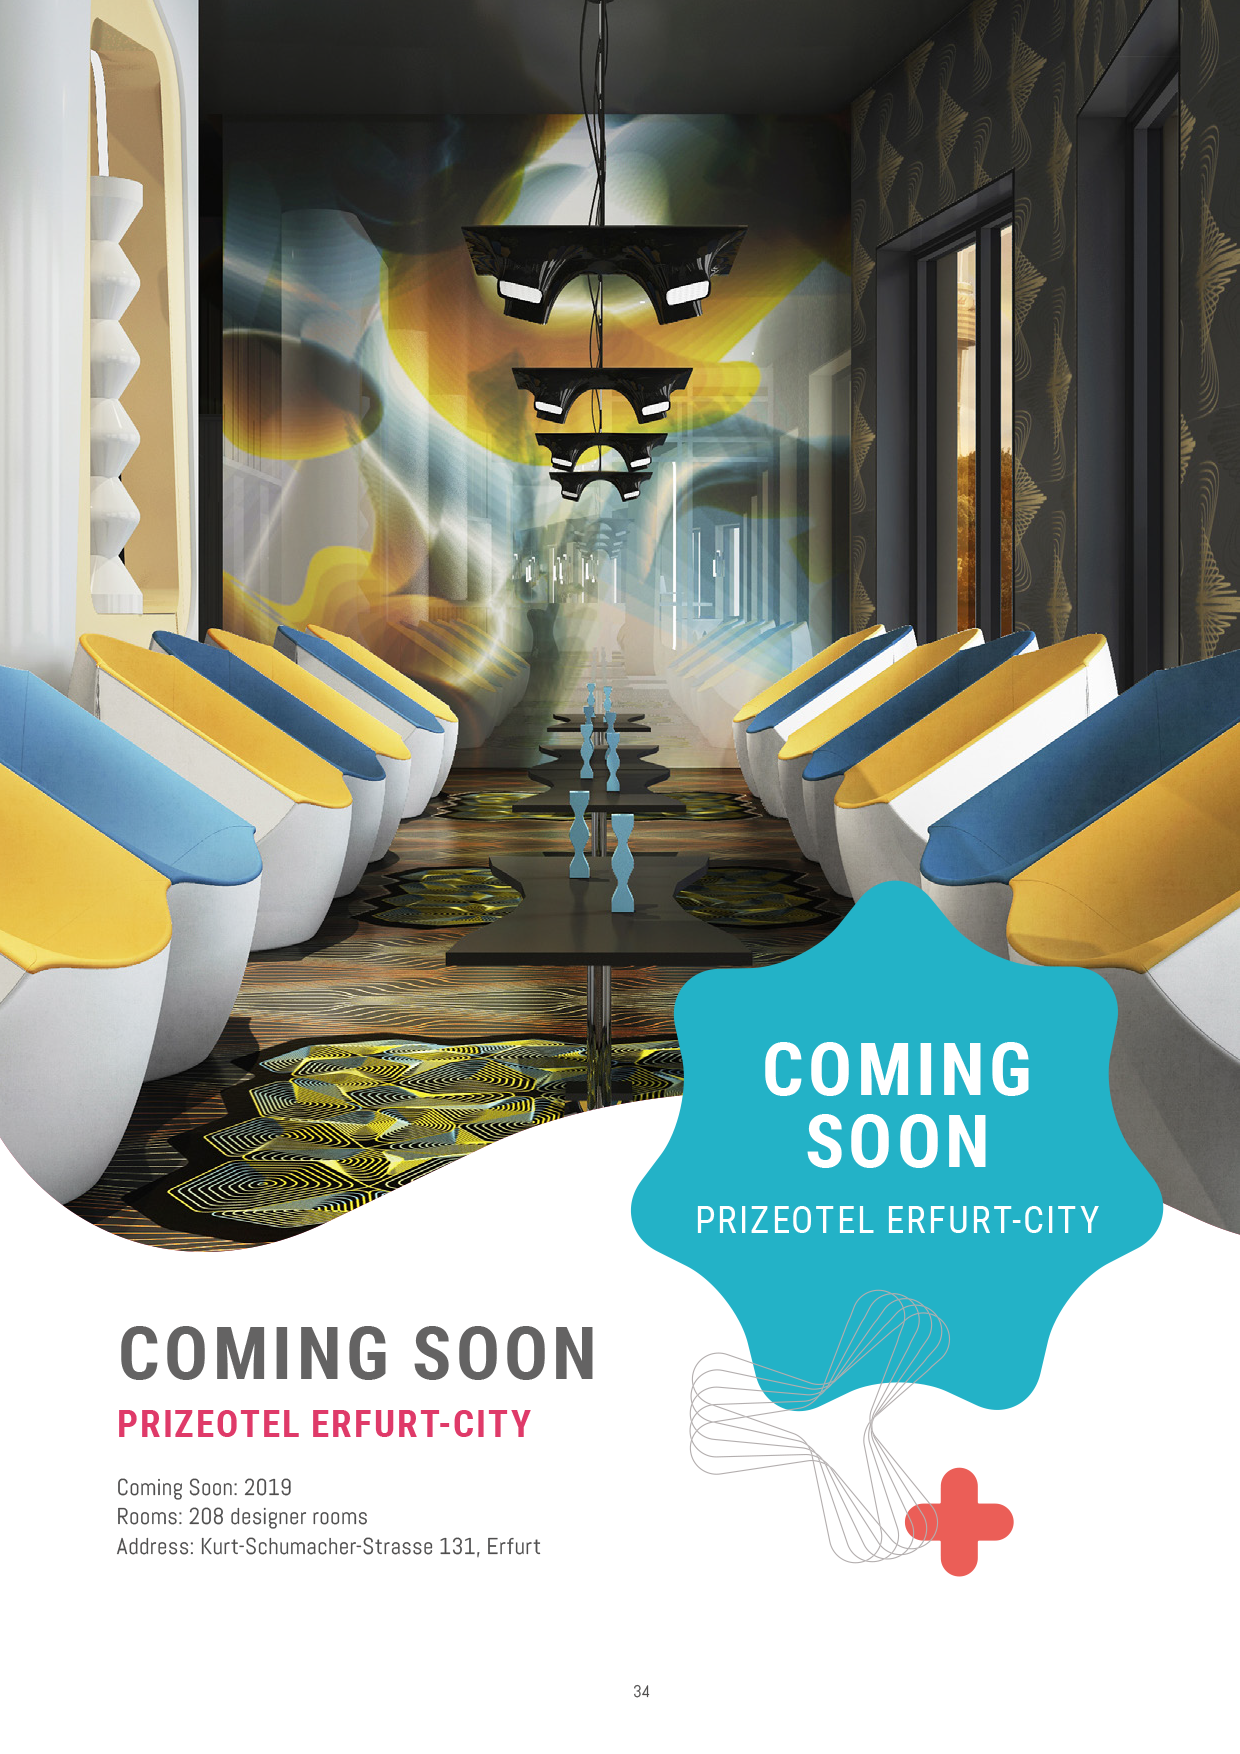 Coming Soon - prizeotel Erfurt-City